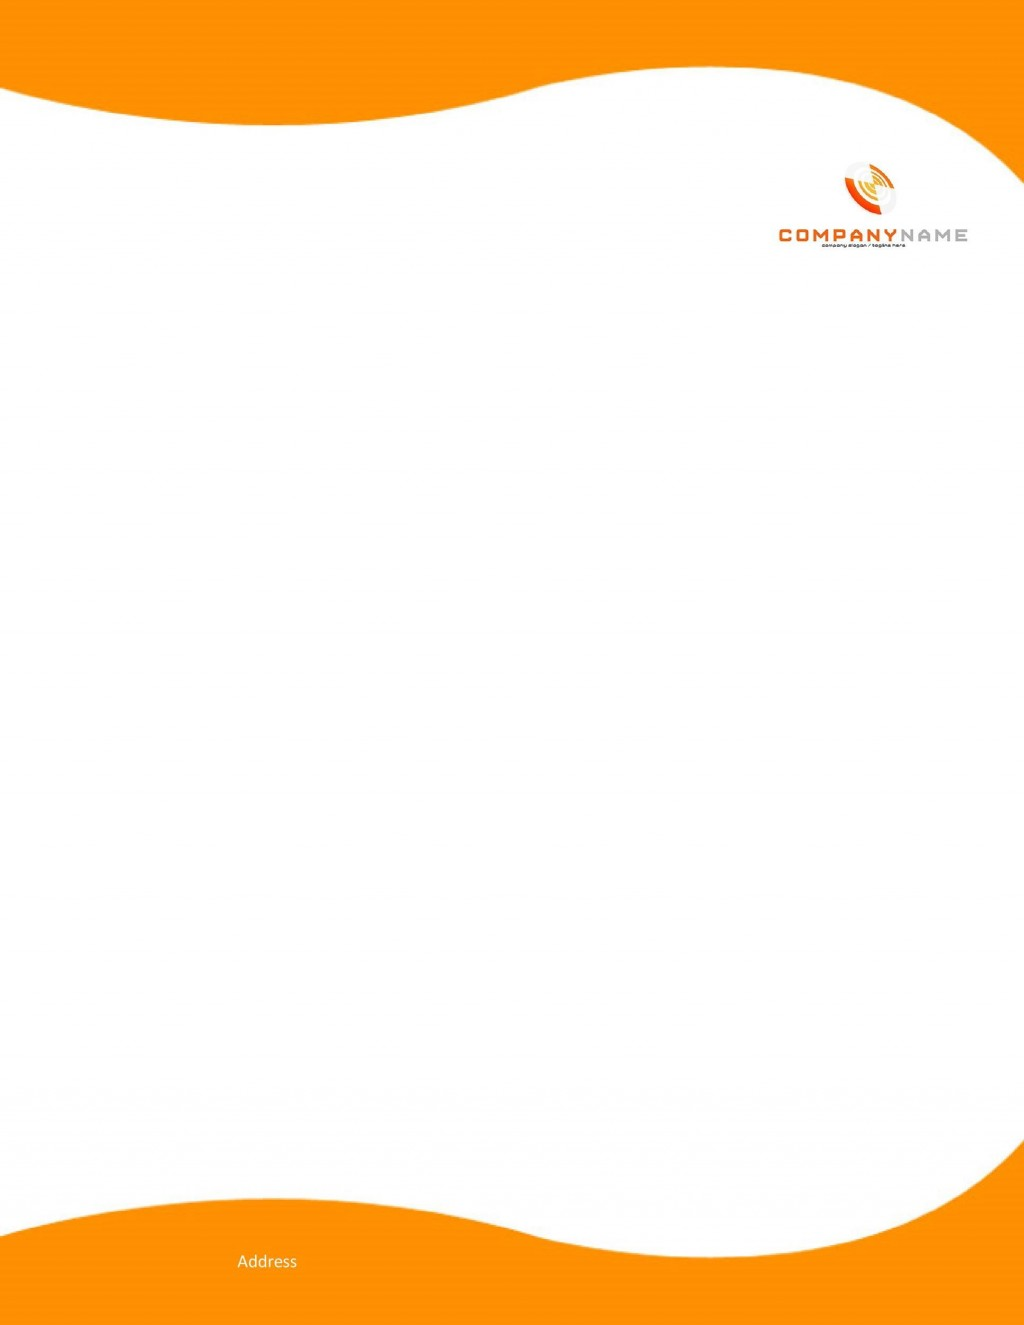 007 Stupendou Letterhead Template Free Download Word Concept  Restaurant Microsoft Format InLarge